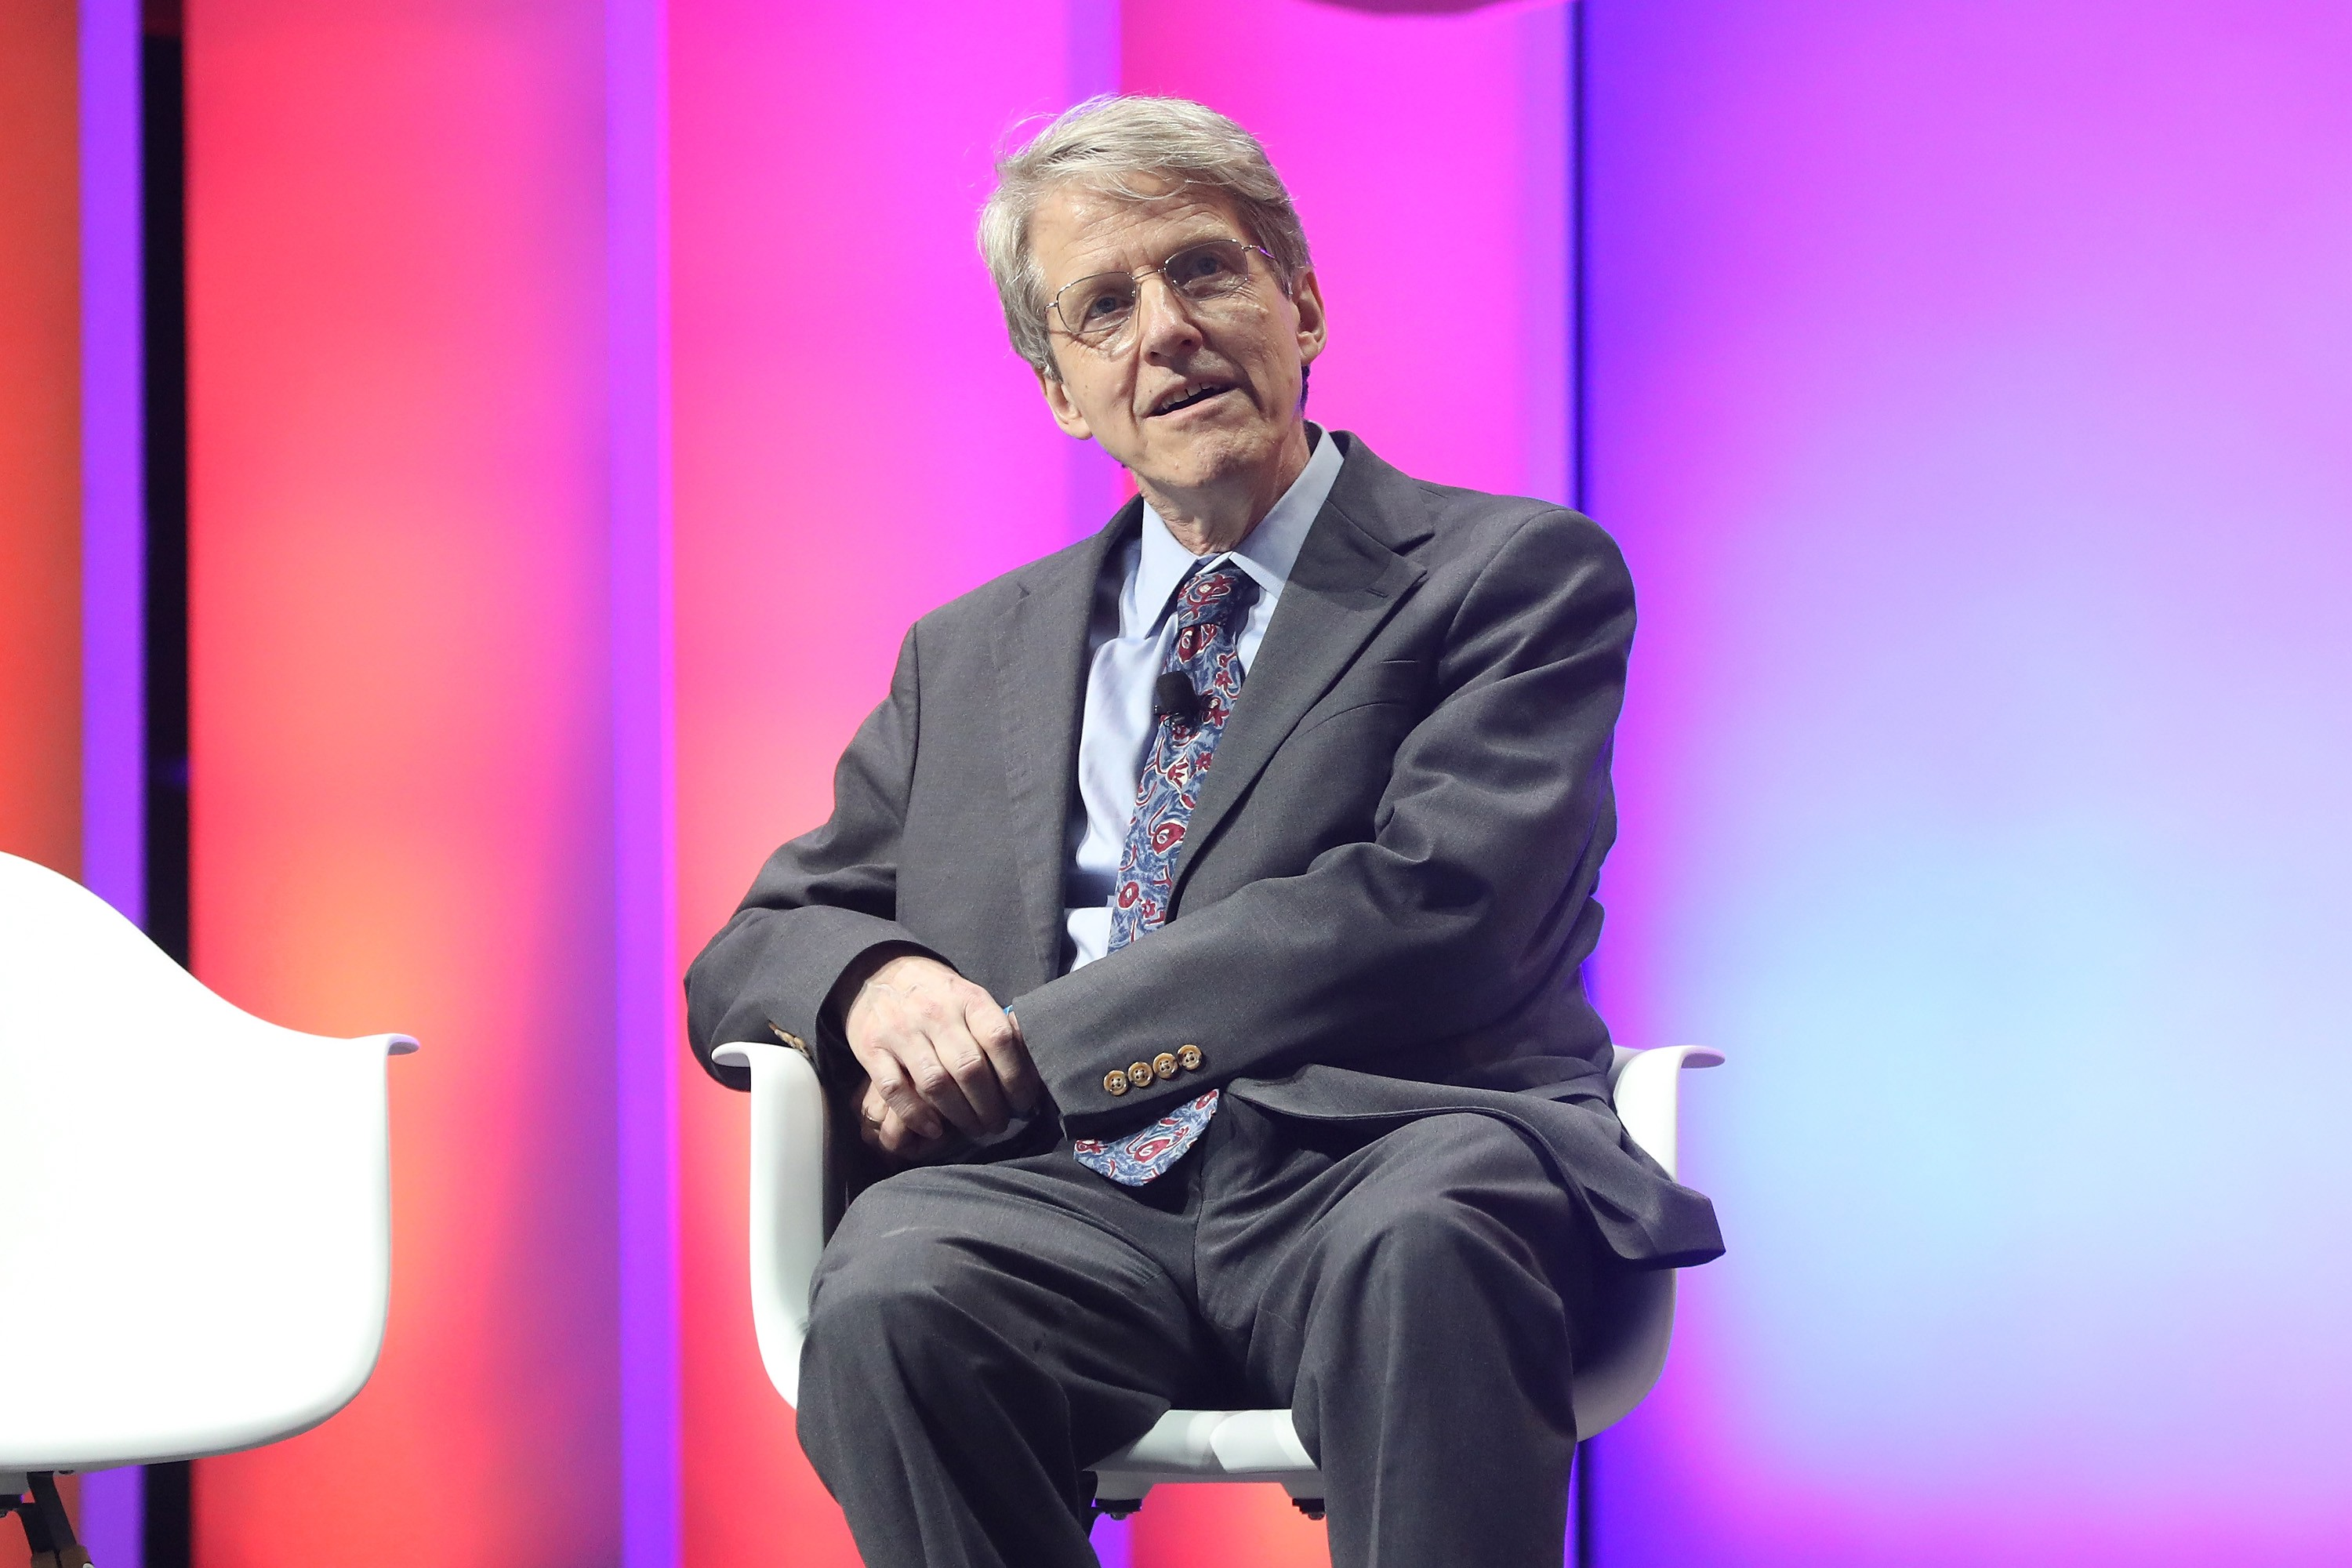 Robert Shiller attends the 2019 Forbes 30 Under 30 Summit on October 29, 2019 in Detroit, Michigan.